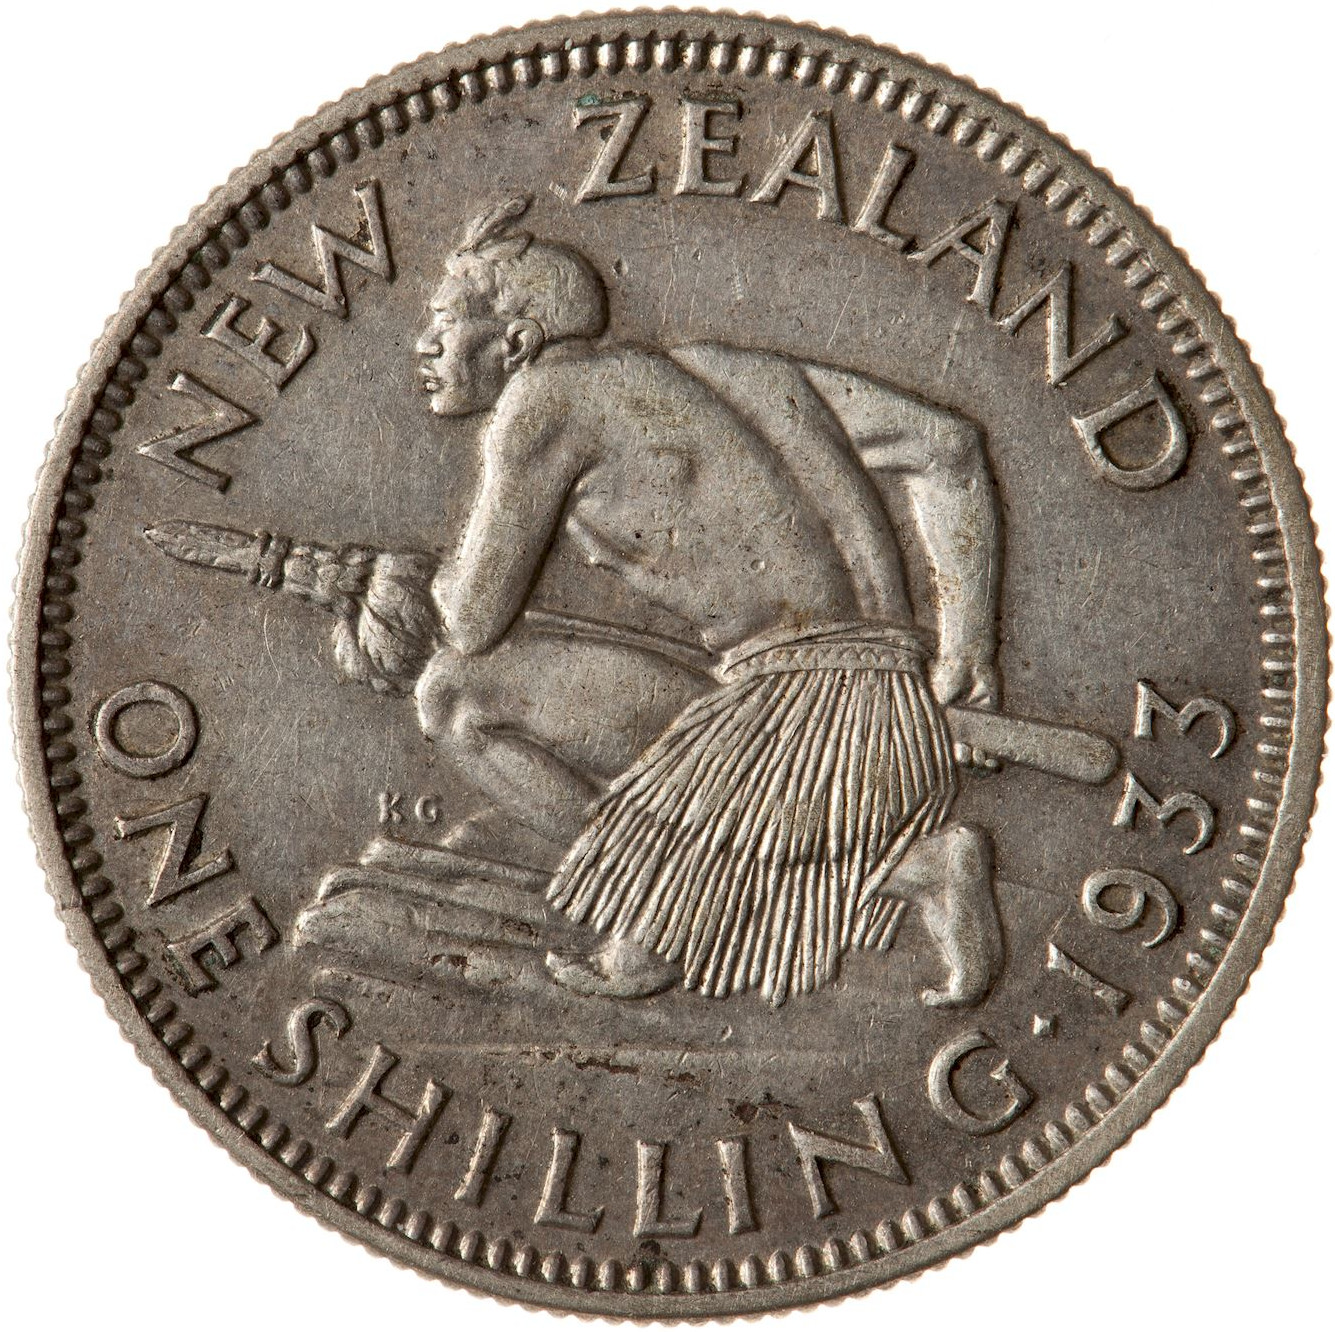 Shilling 1933: Photo Coin - 1 Shilling, New Zealand, 1933